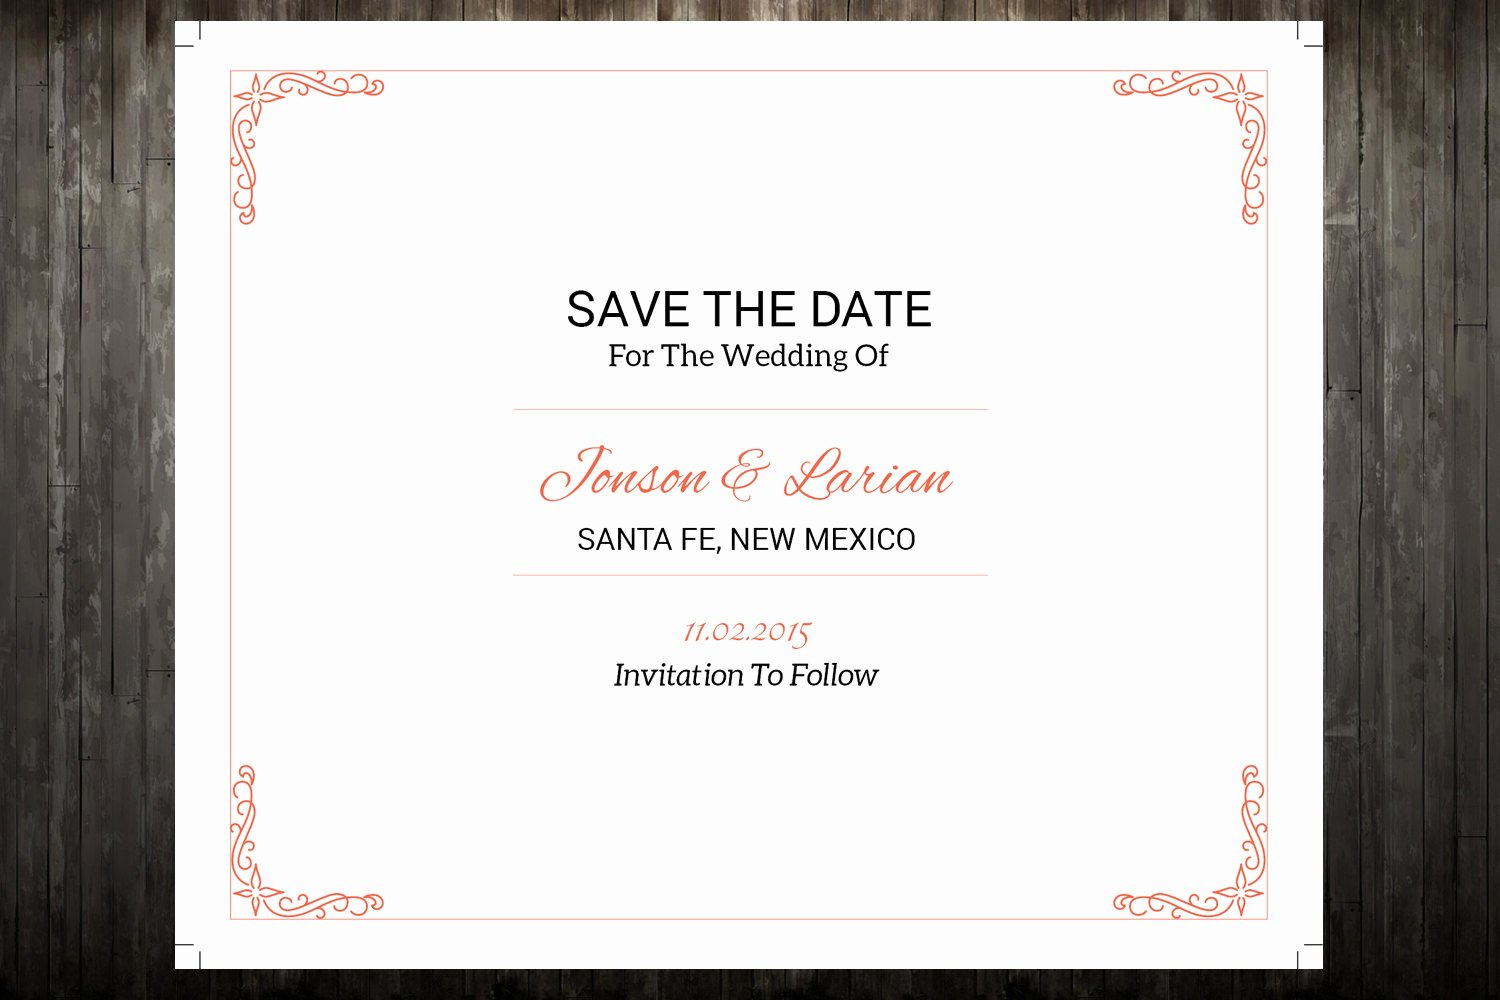 Save the Date Postcard Template New Sale Save the Date Template Wedding Save the Date Postcard